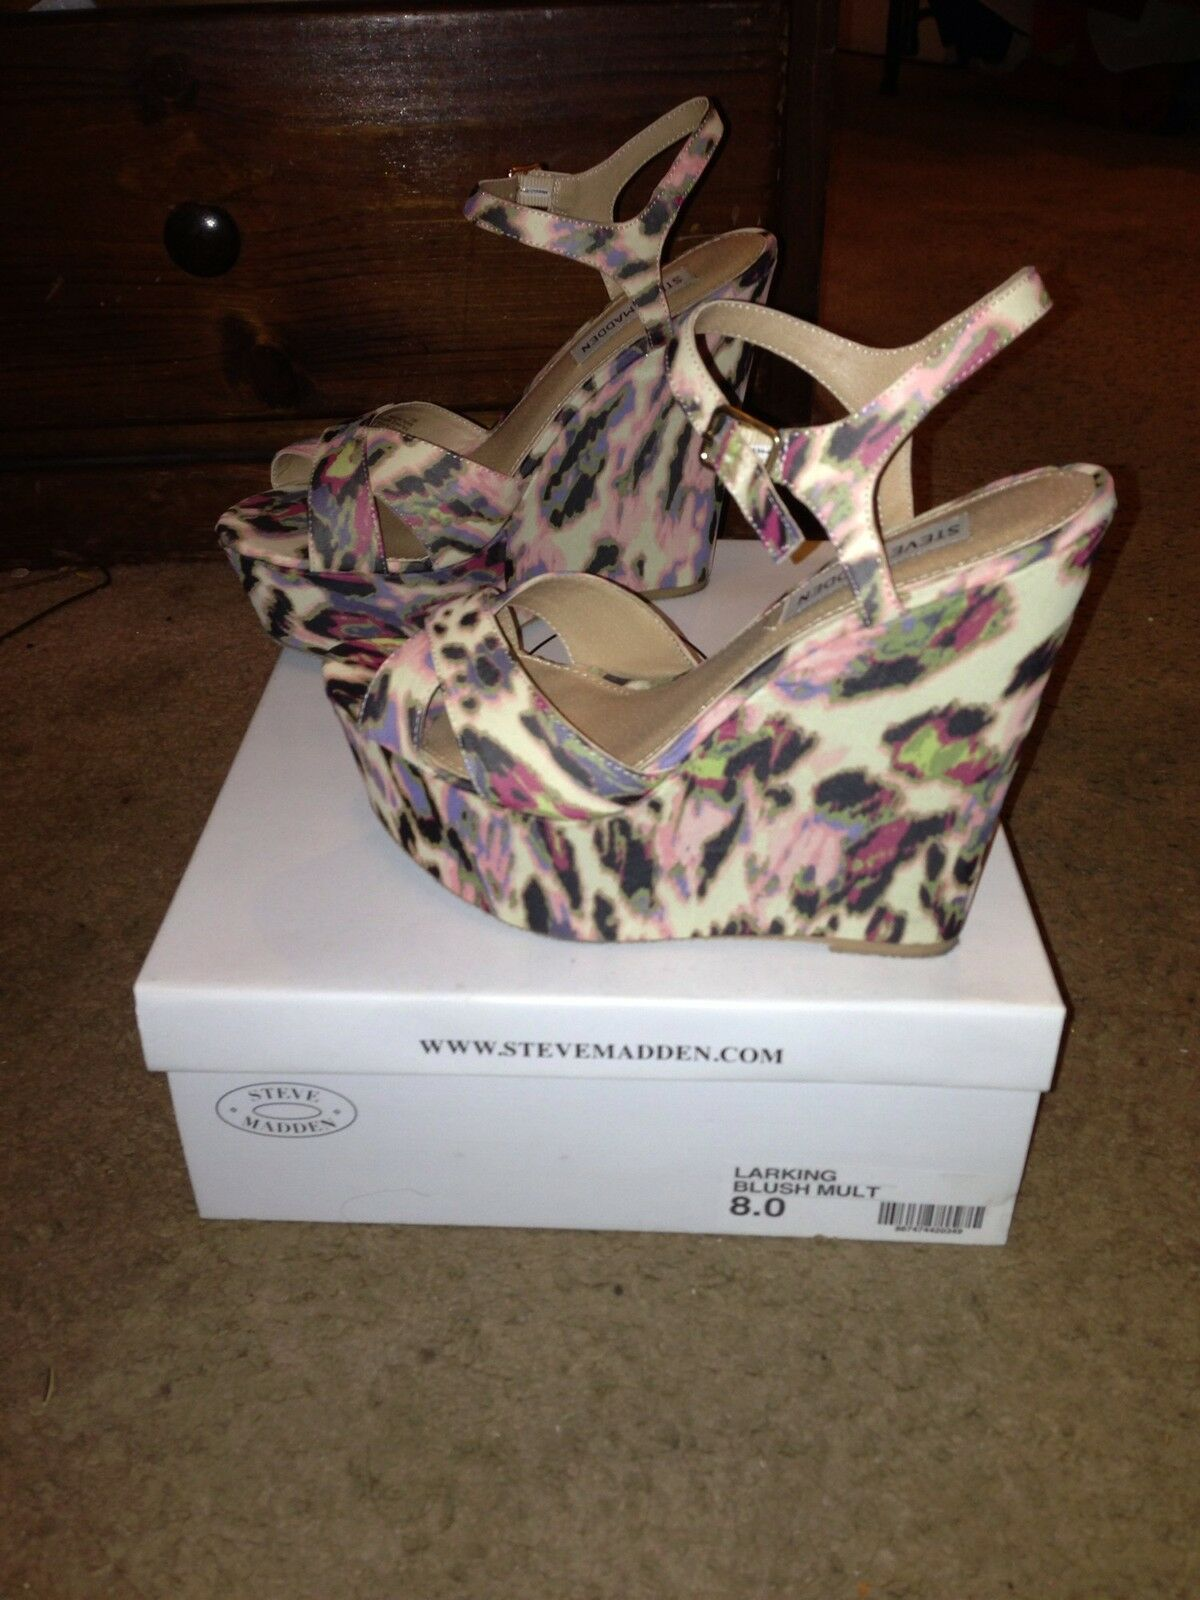 Steve Madden Larking Blush Multi Wedges